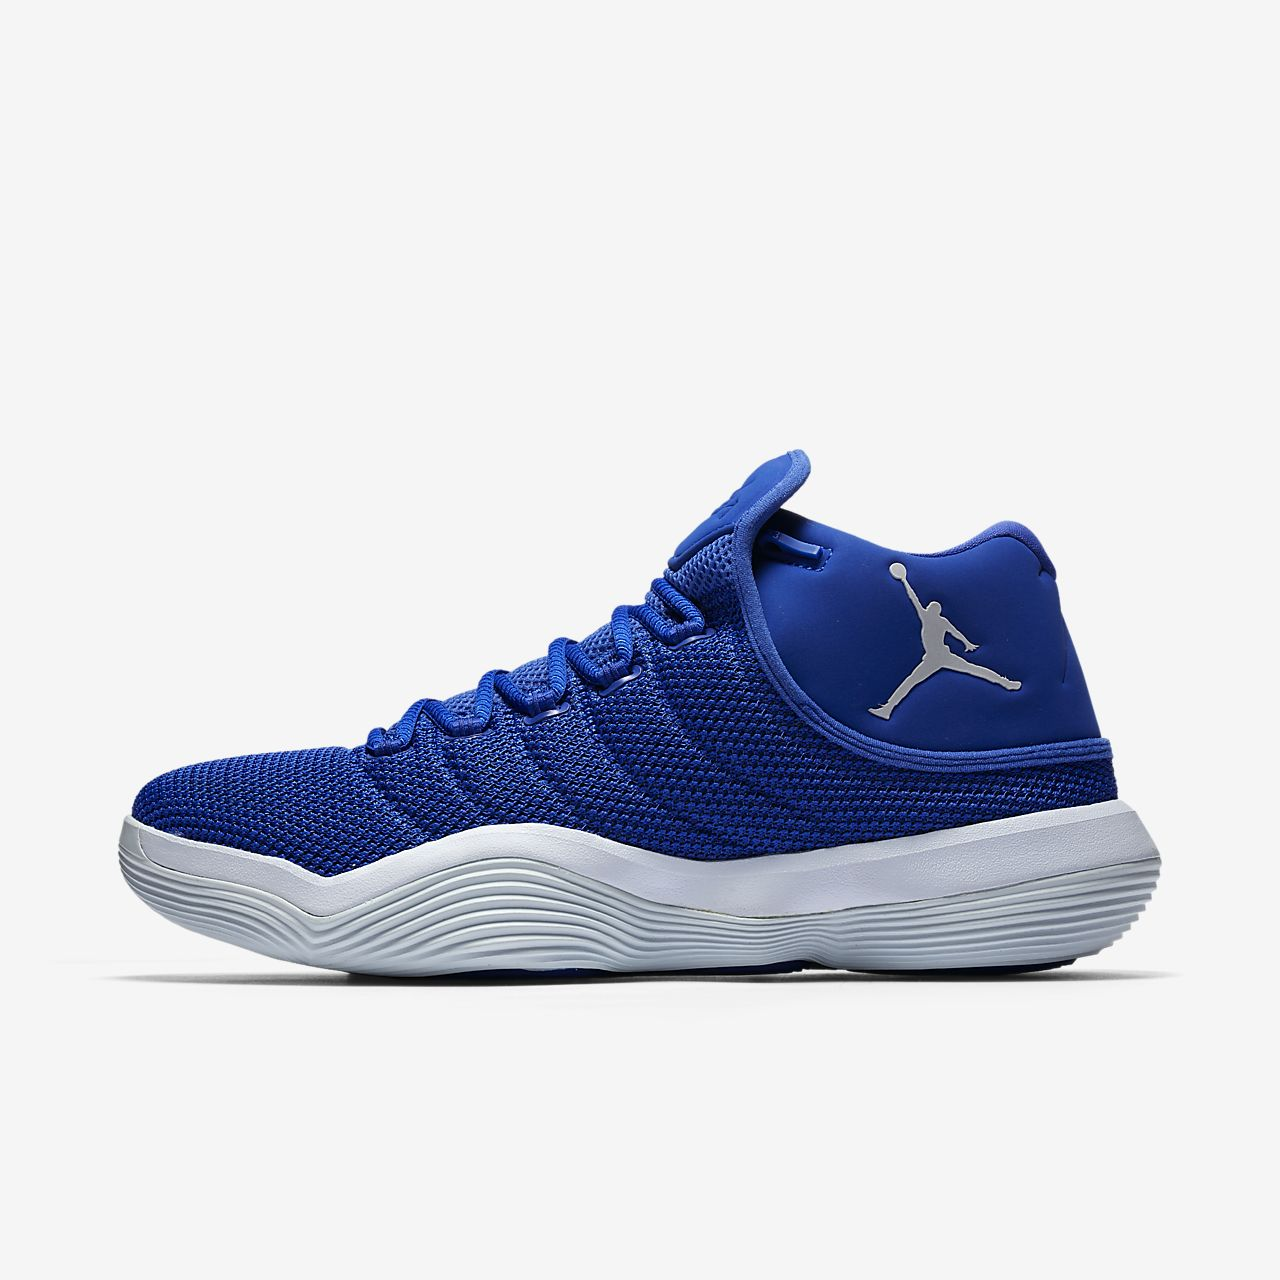 ... Jordan Super.Fly 2017 (Team) Men's Basketball Shoe